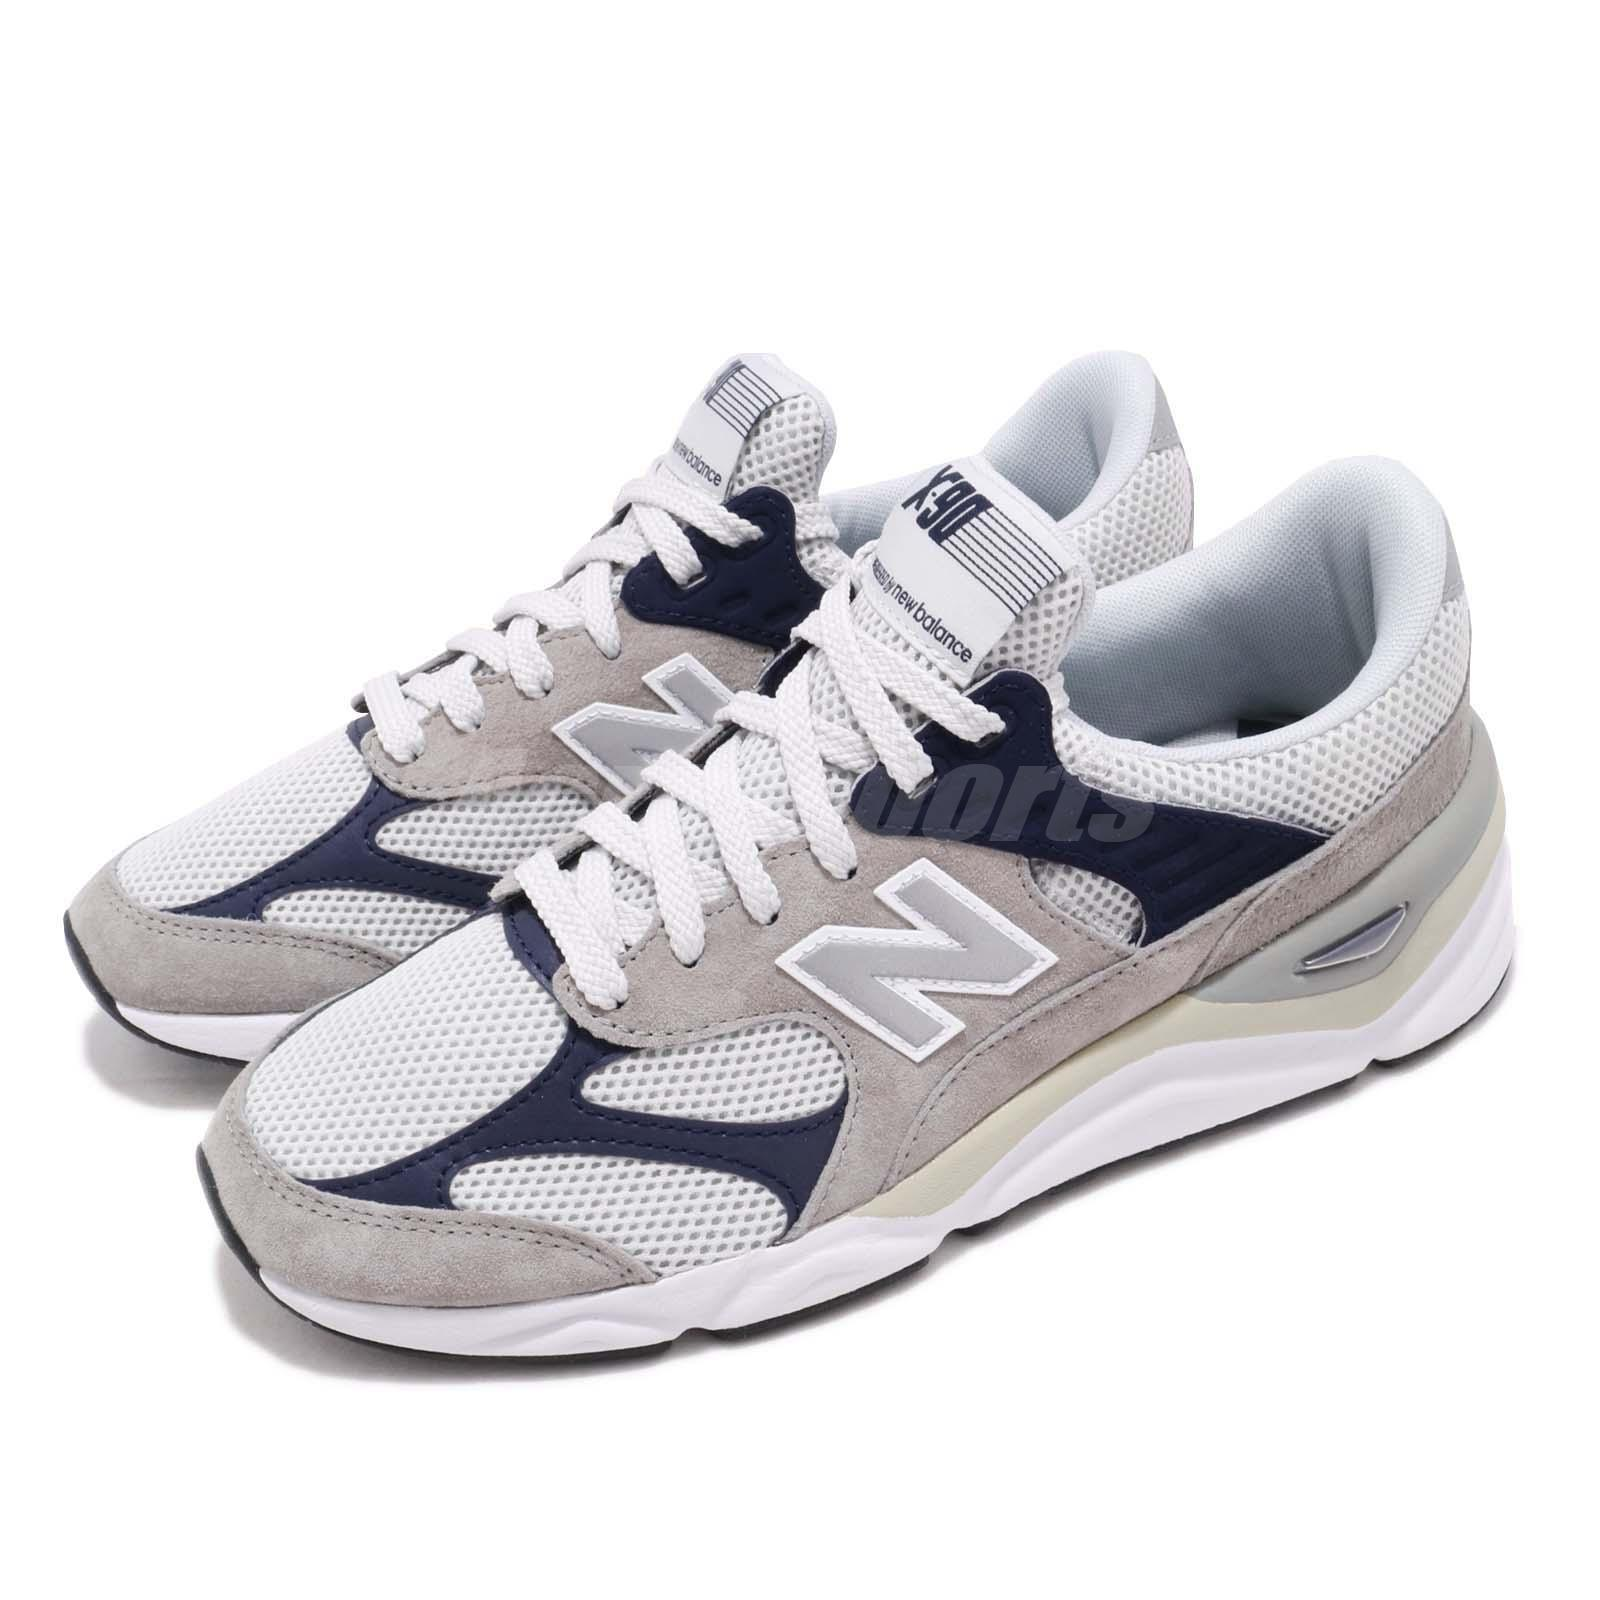 gray and blue new balance shoes